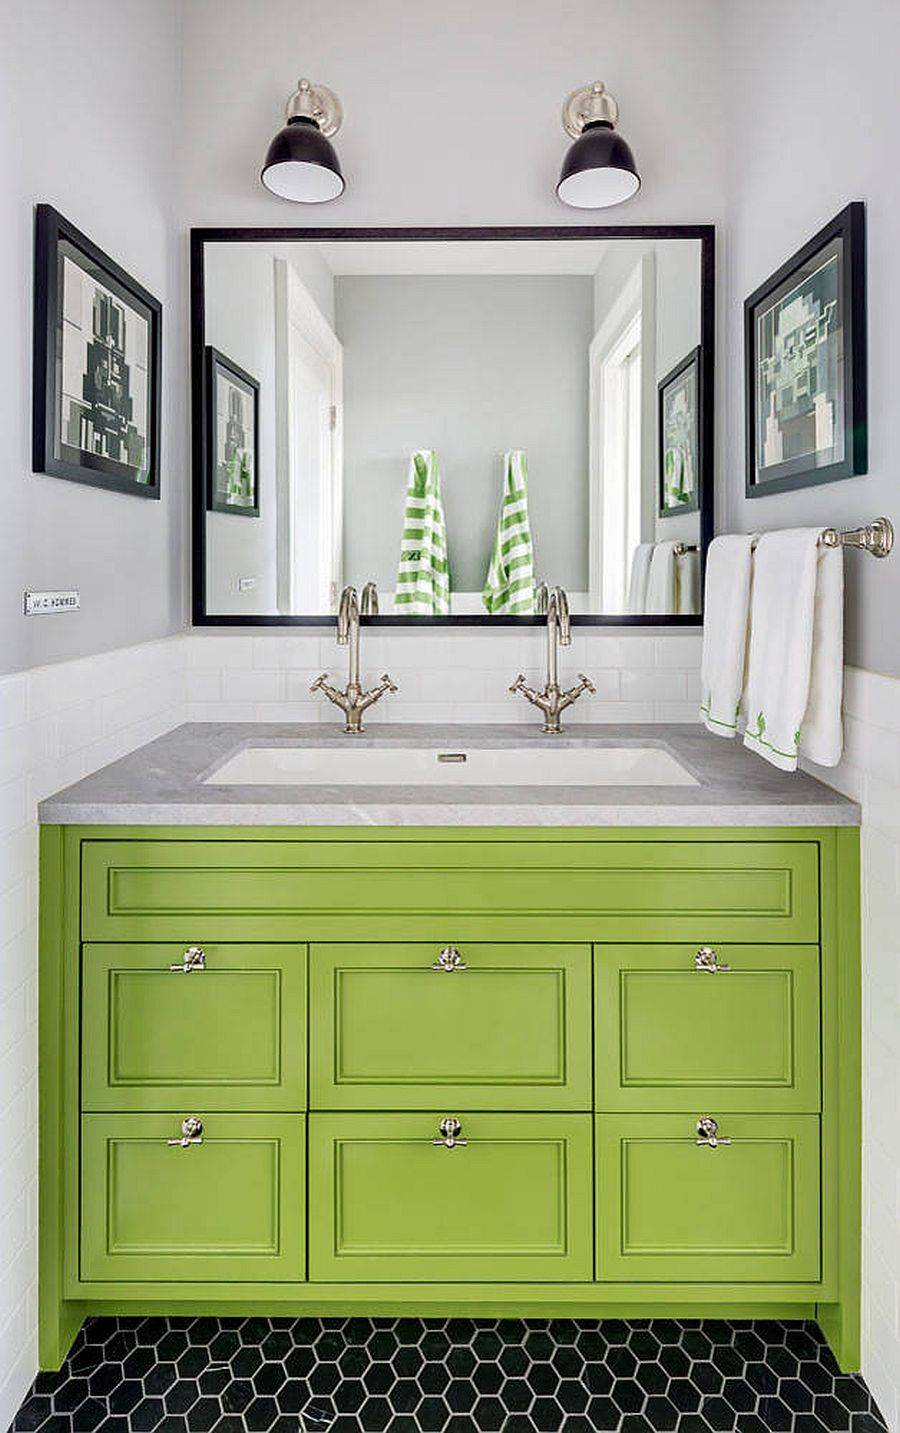 Polished-powder-room-in-Brooklyn-with-a-lovely-green-vanity-and-gray-walls-68753